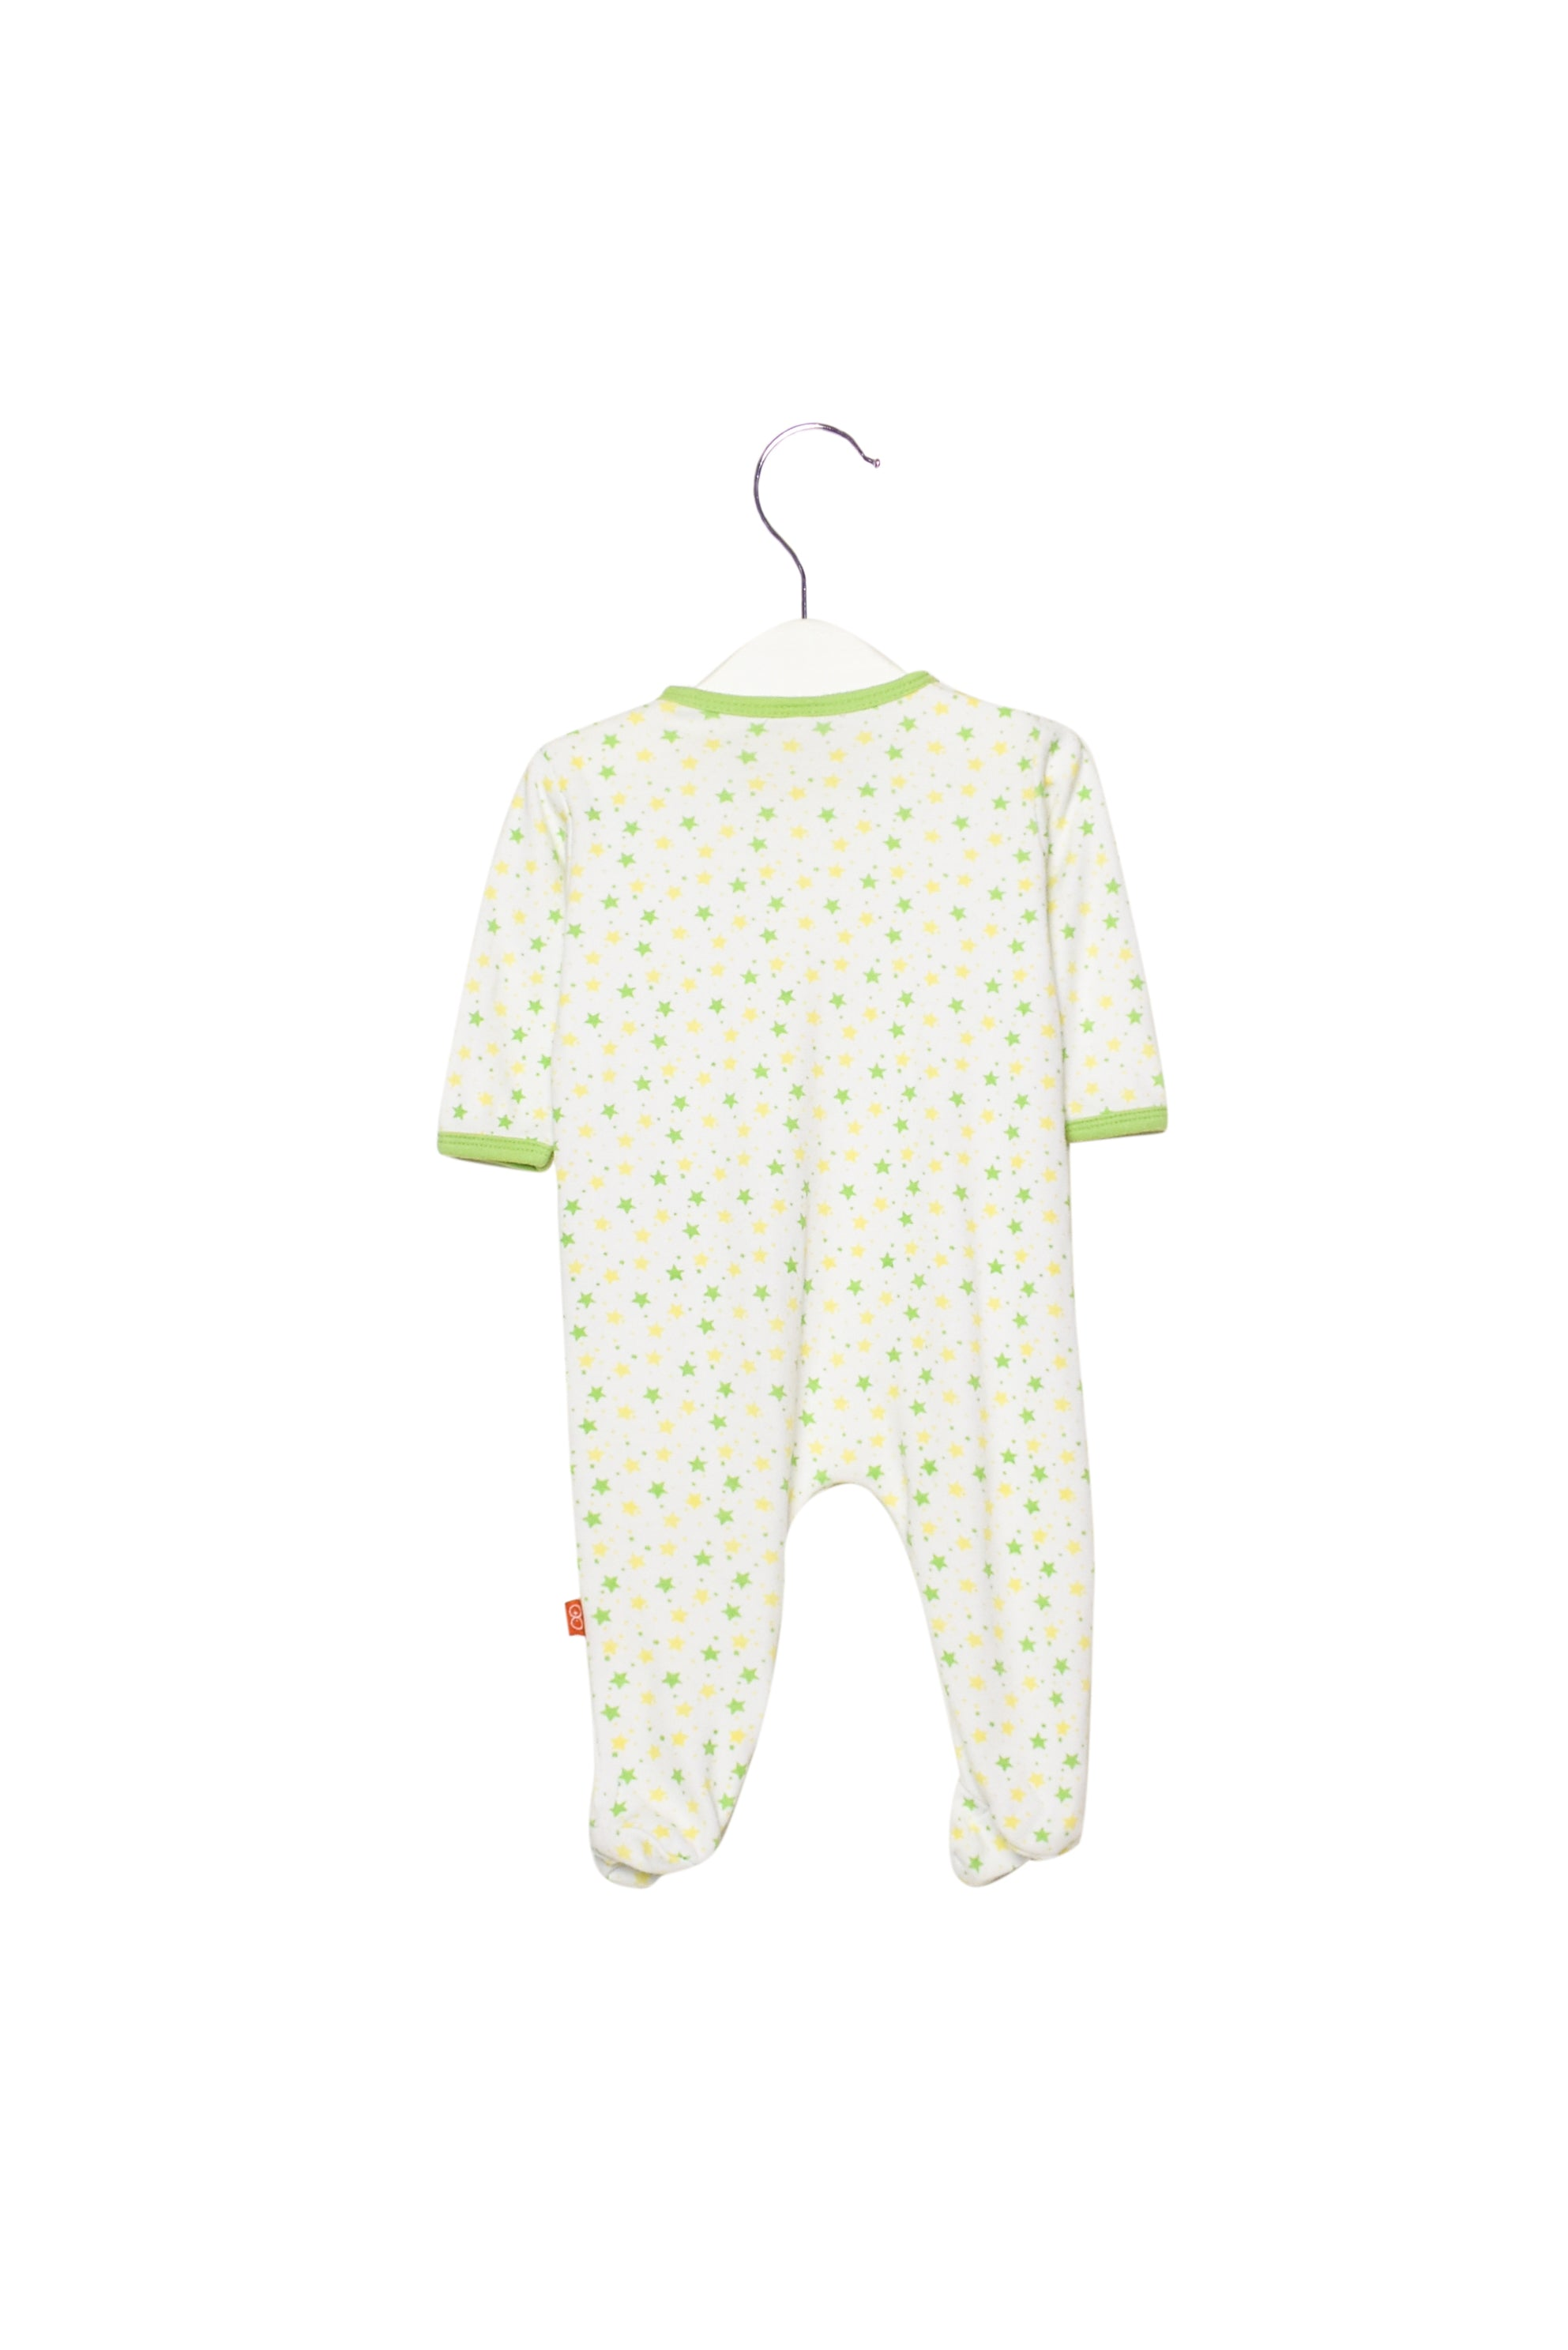 10011972 Magnificent Baby ~ Jumpsuit NB at Retykle